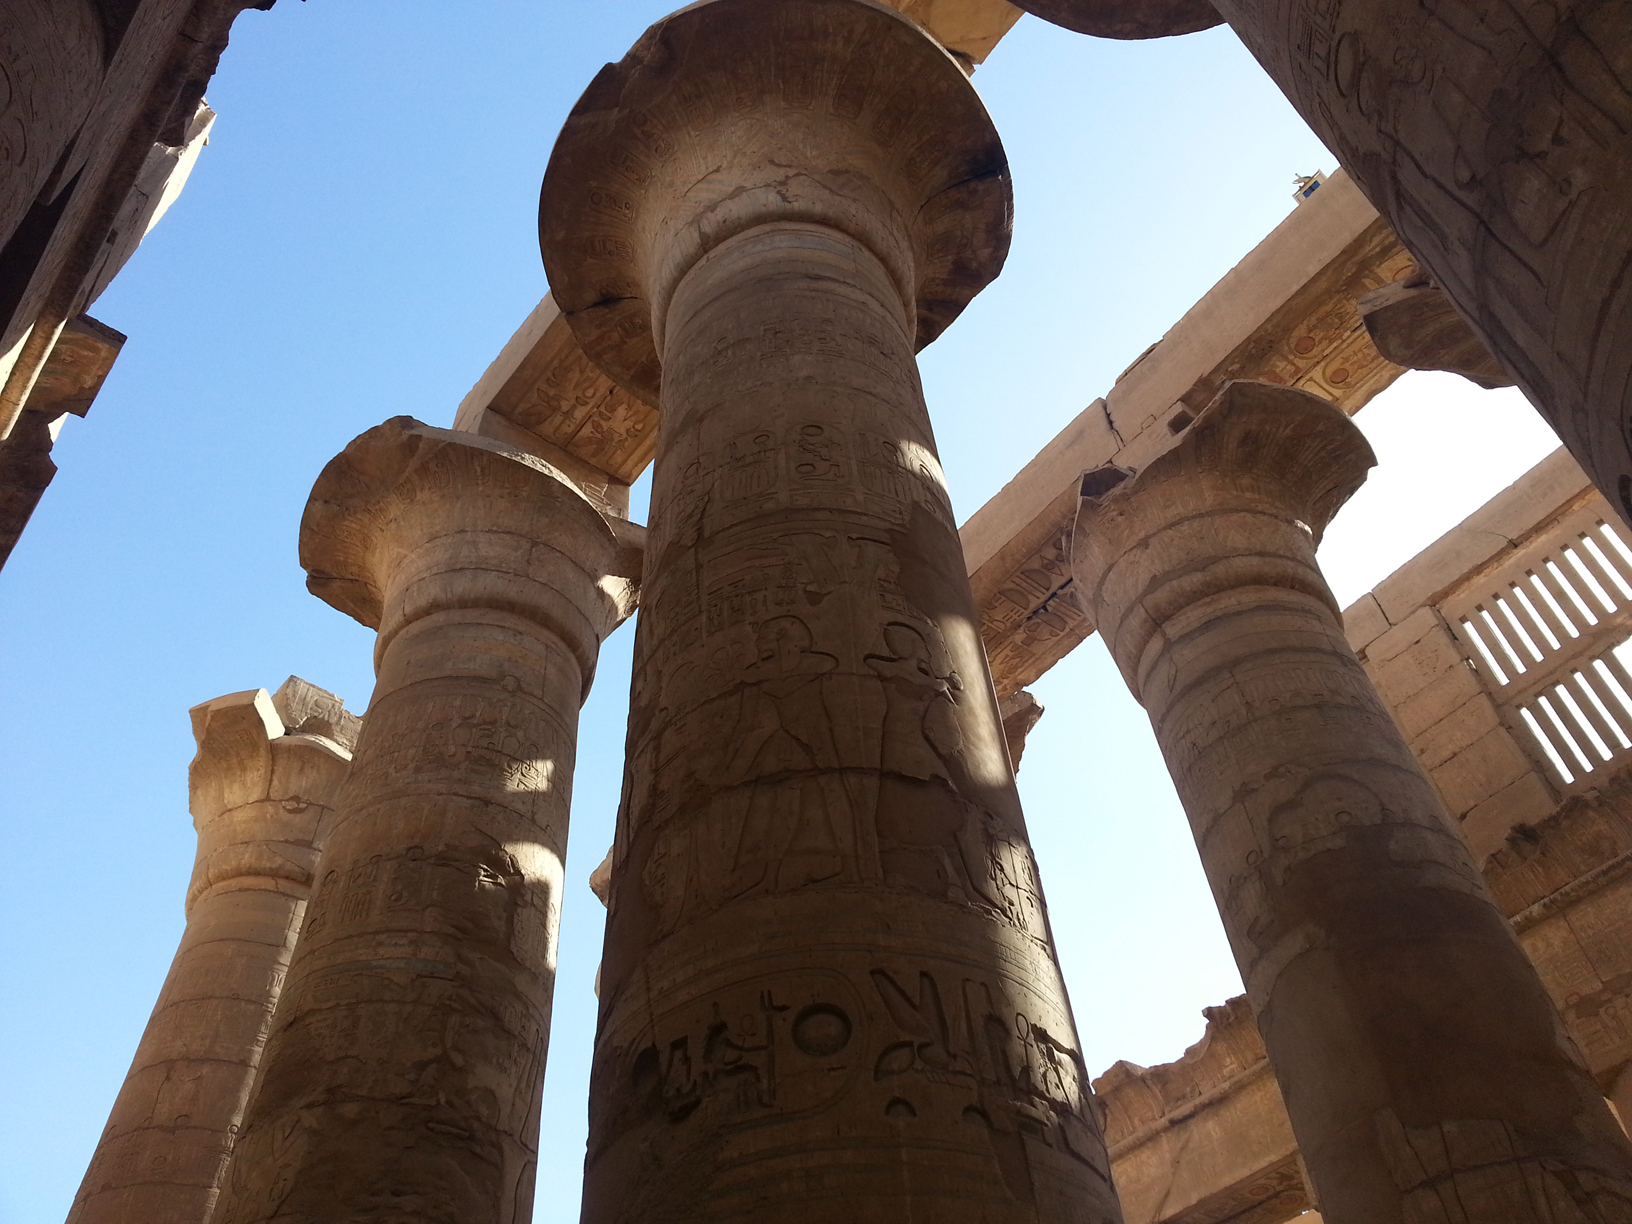 Great Hypostyle hall inside Karnak temple.